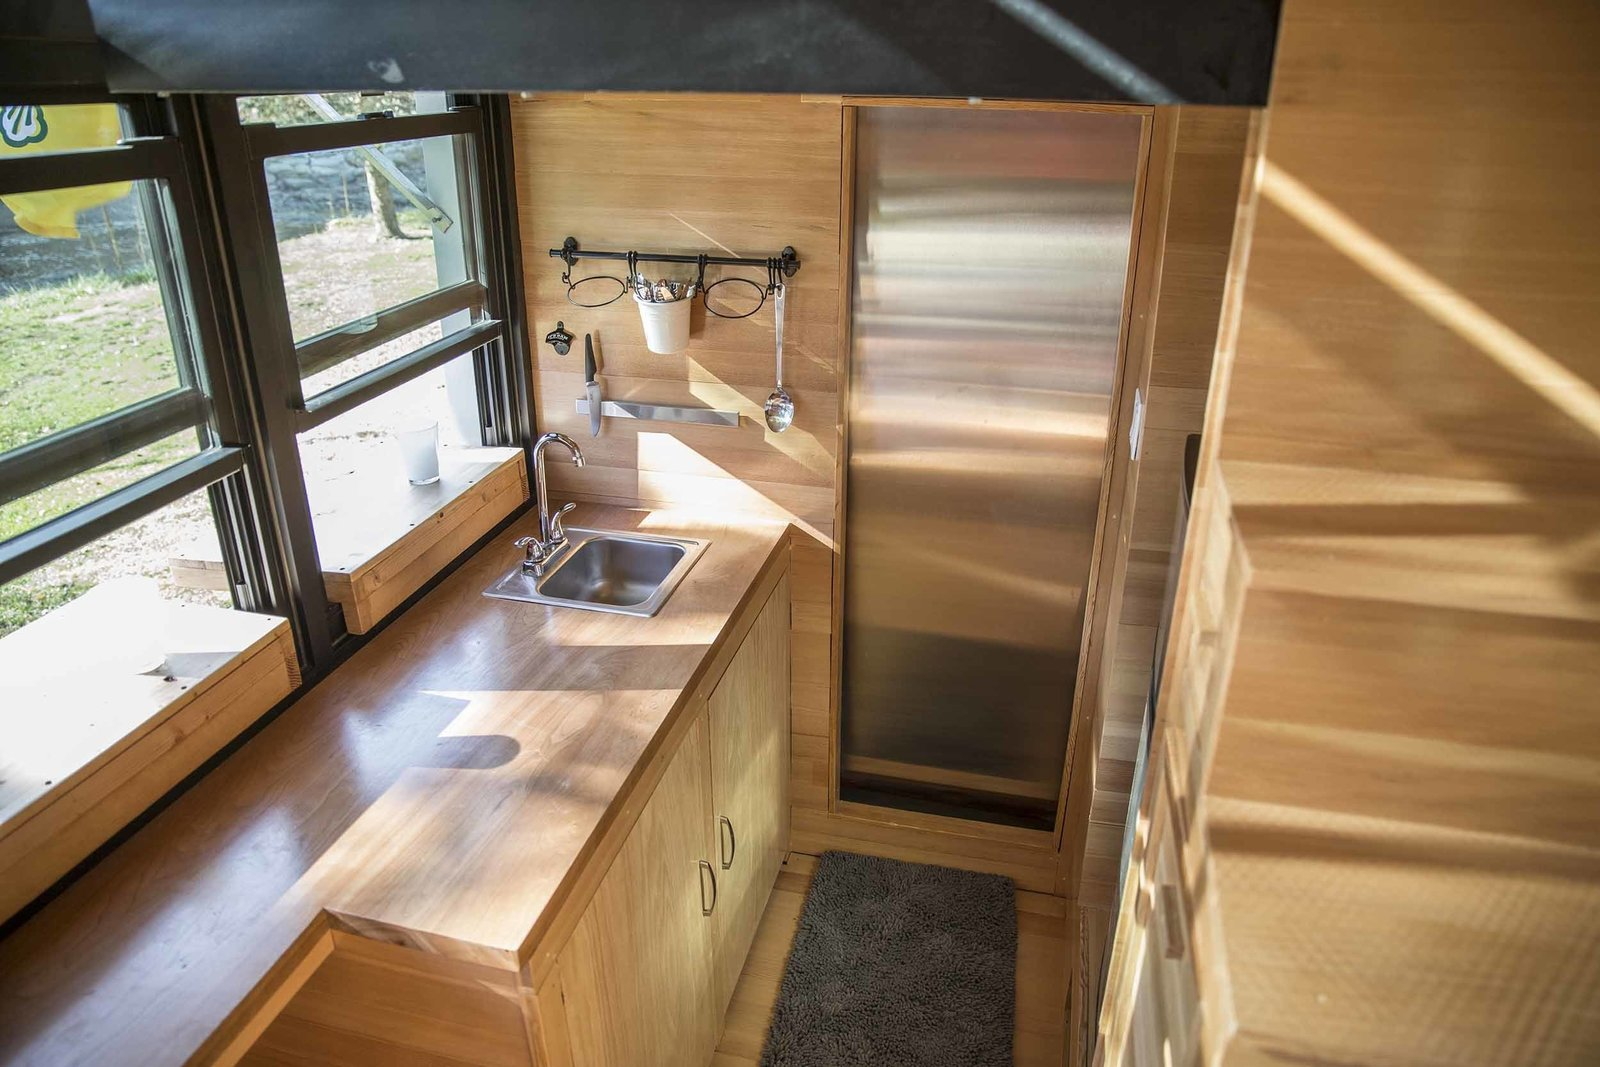 The all-wood interior features standard home appliances, such as a sink, induction cook top, and refrigerator.  A Tiny Trailer Home Harvests Solar Power and Rainwater to Save Energy by Luke Hopping